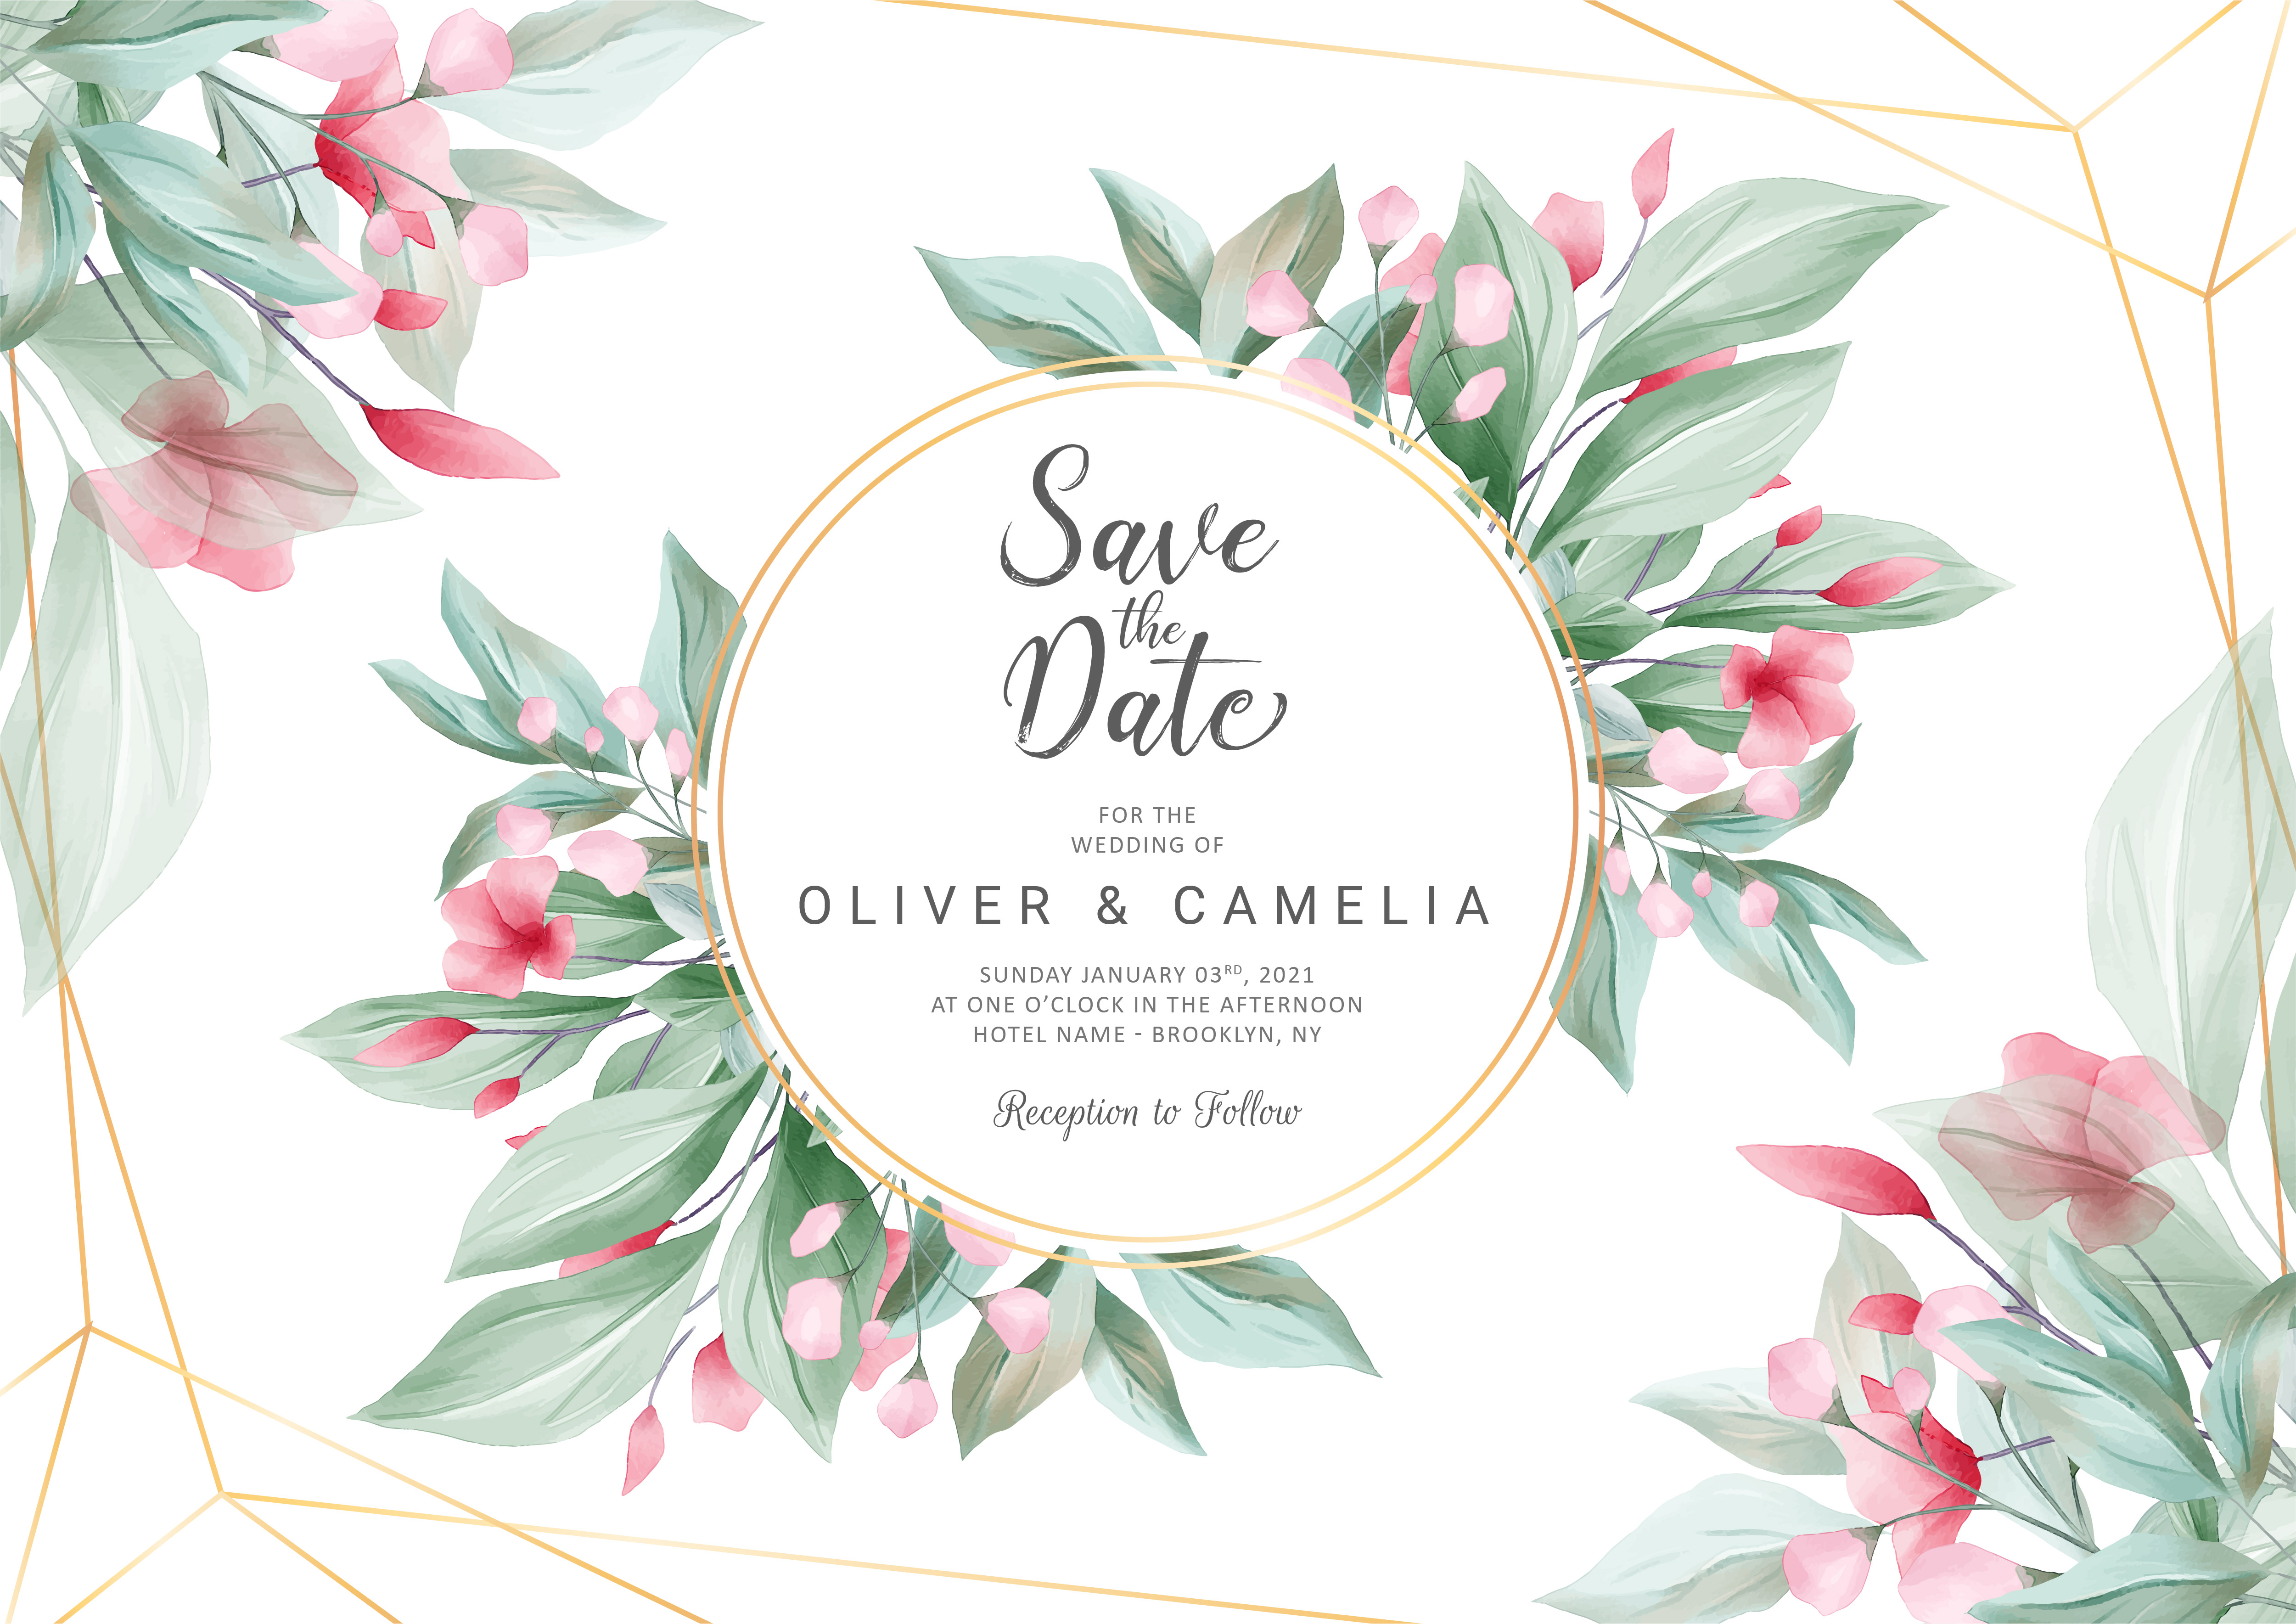 Horizontal wedding invitation card template - Download Free